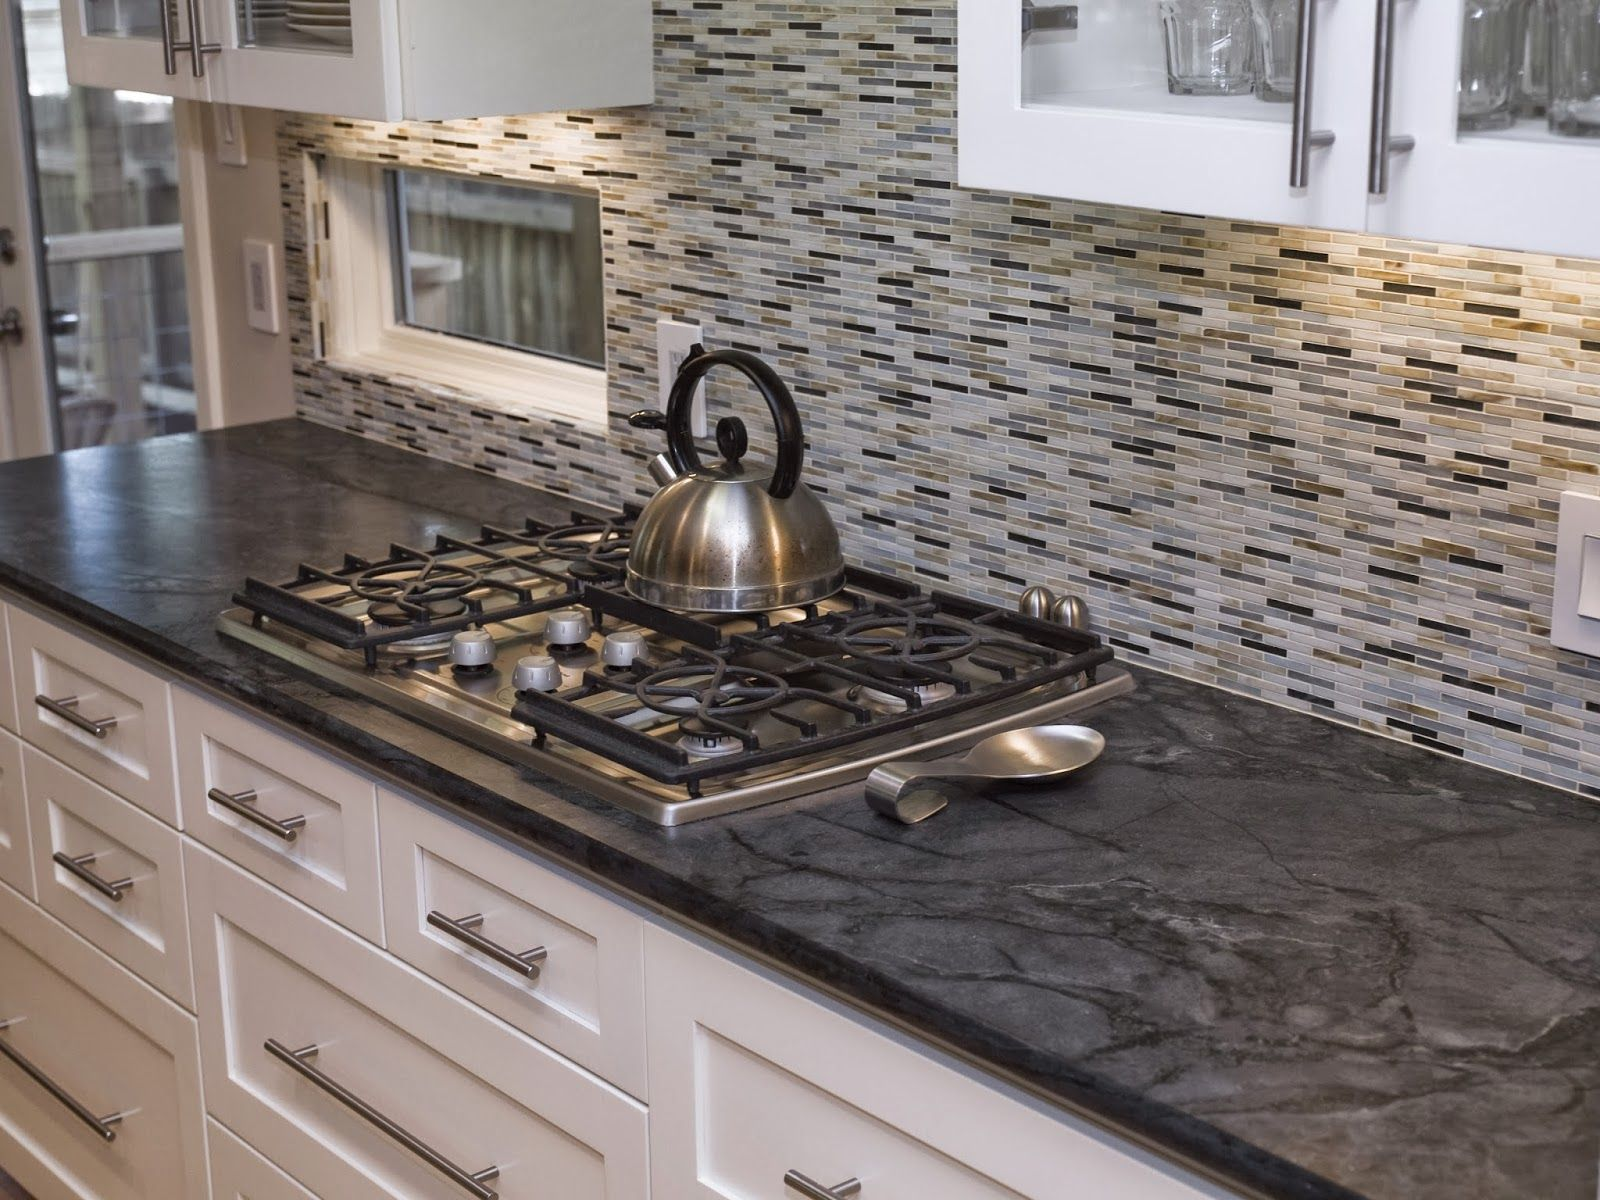 Black Granite Countertops With Tile Backsplash Property relax white cabinet kitchen granite on top also electric gas stove